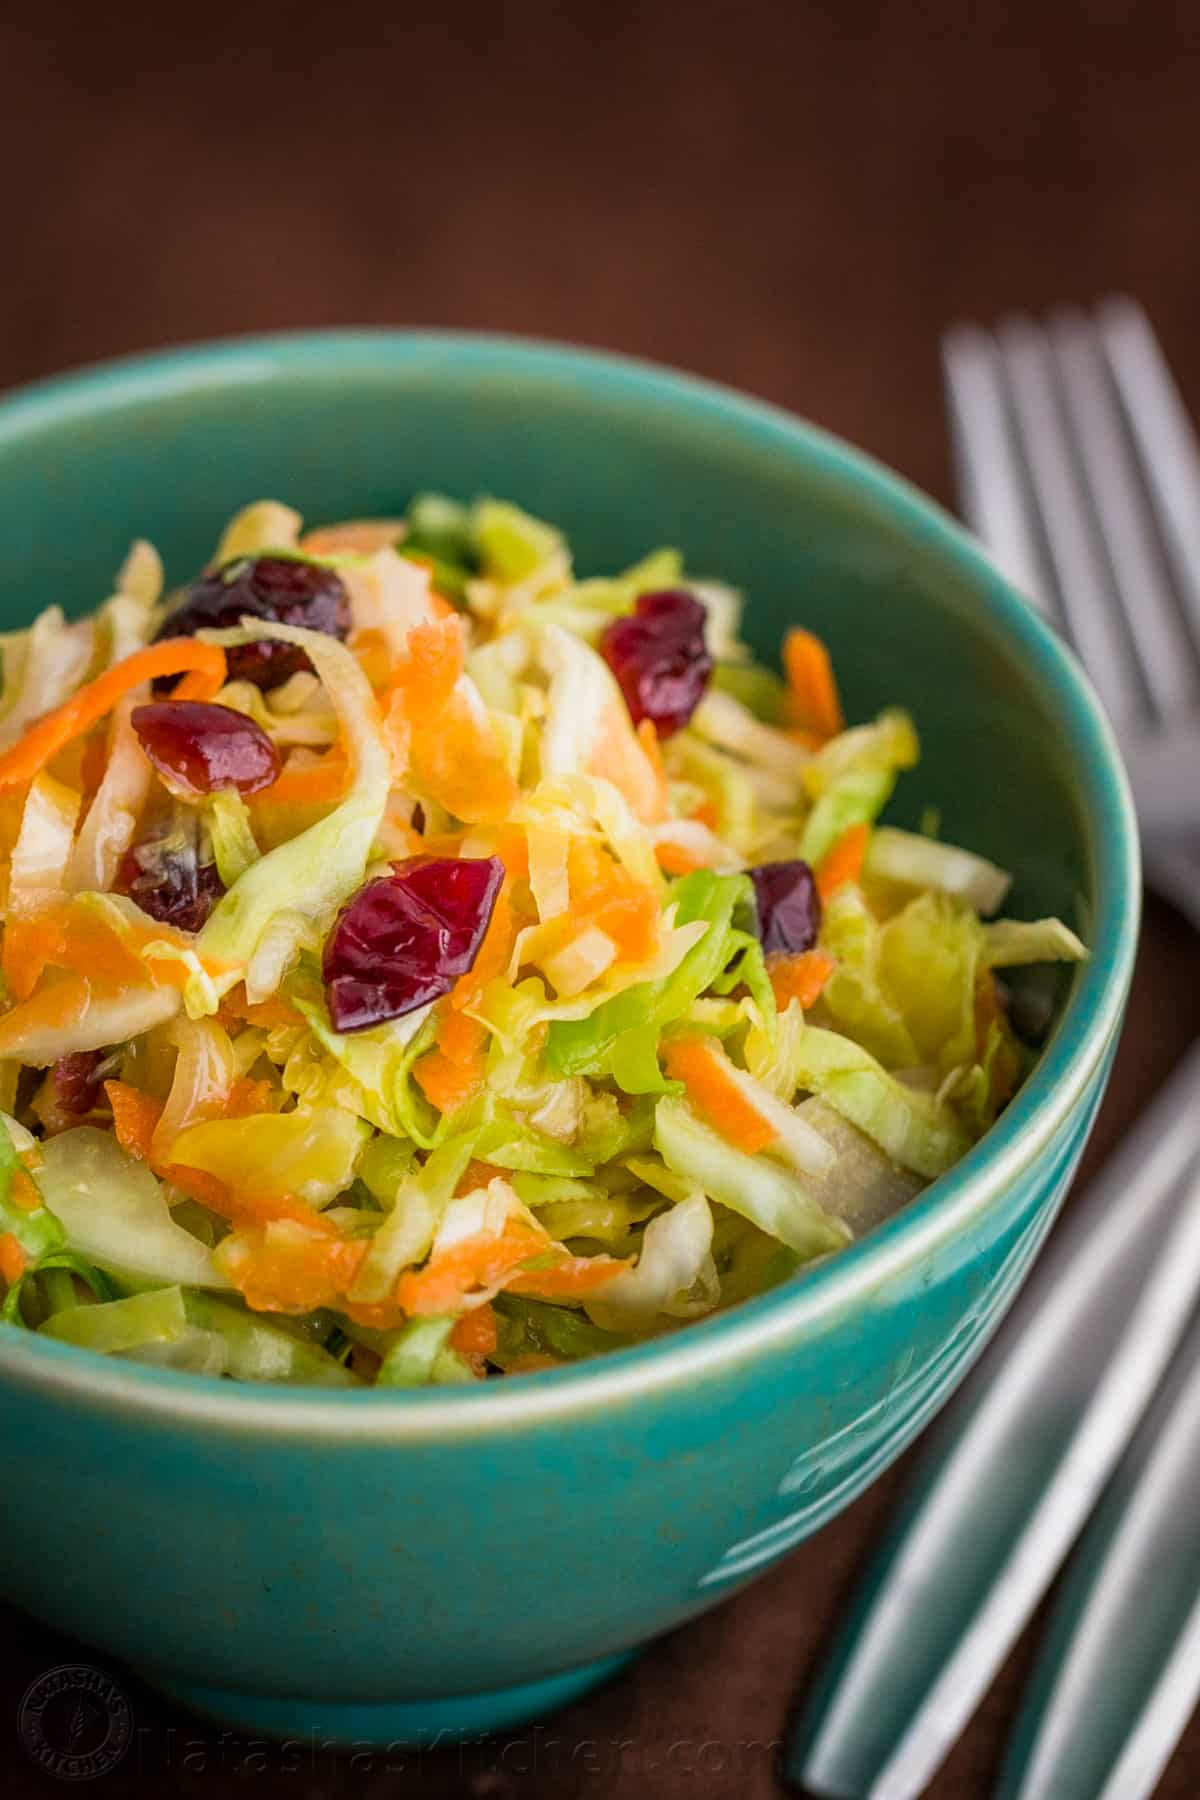 Salad Chanterelle with Korean carrots. Cooking options